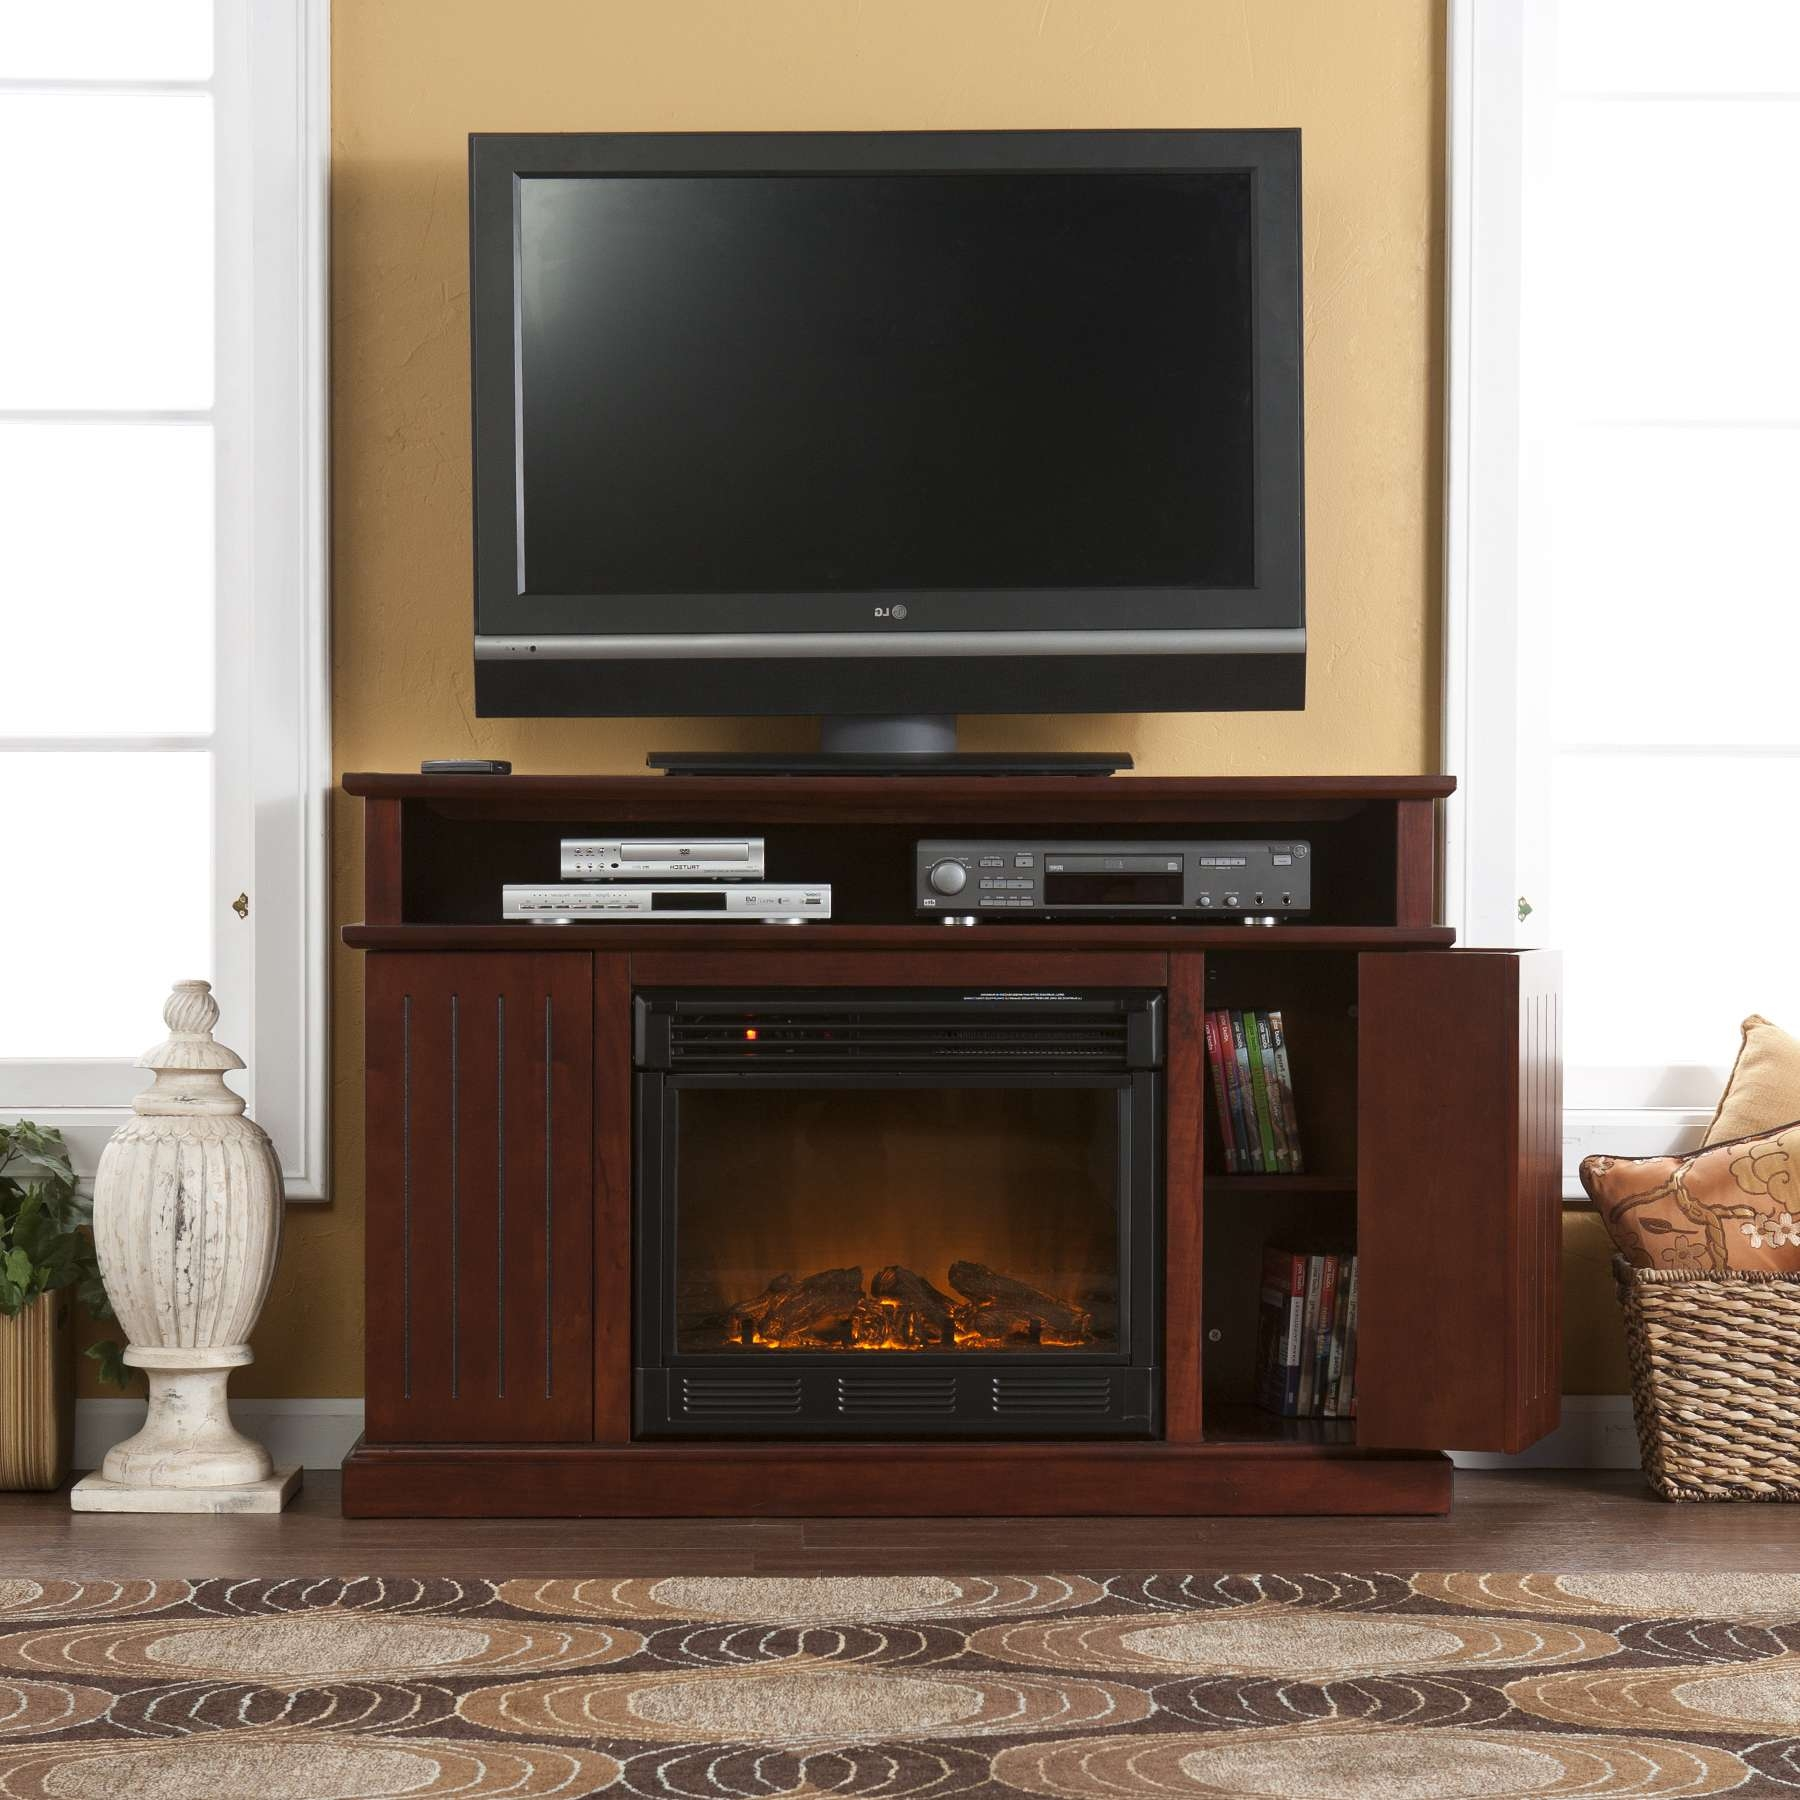 Cherry Wood Tv Stand With Electric Fireplace And Cd Storage Within Cherry Wood Tv Cabinets (View 9 of 20)